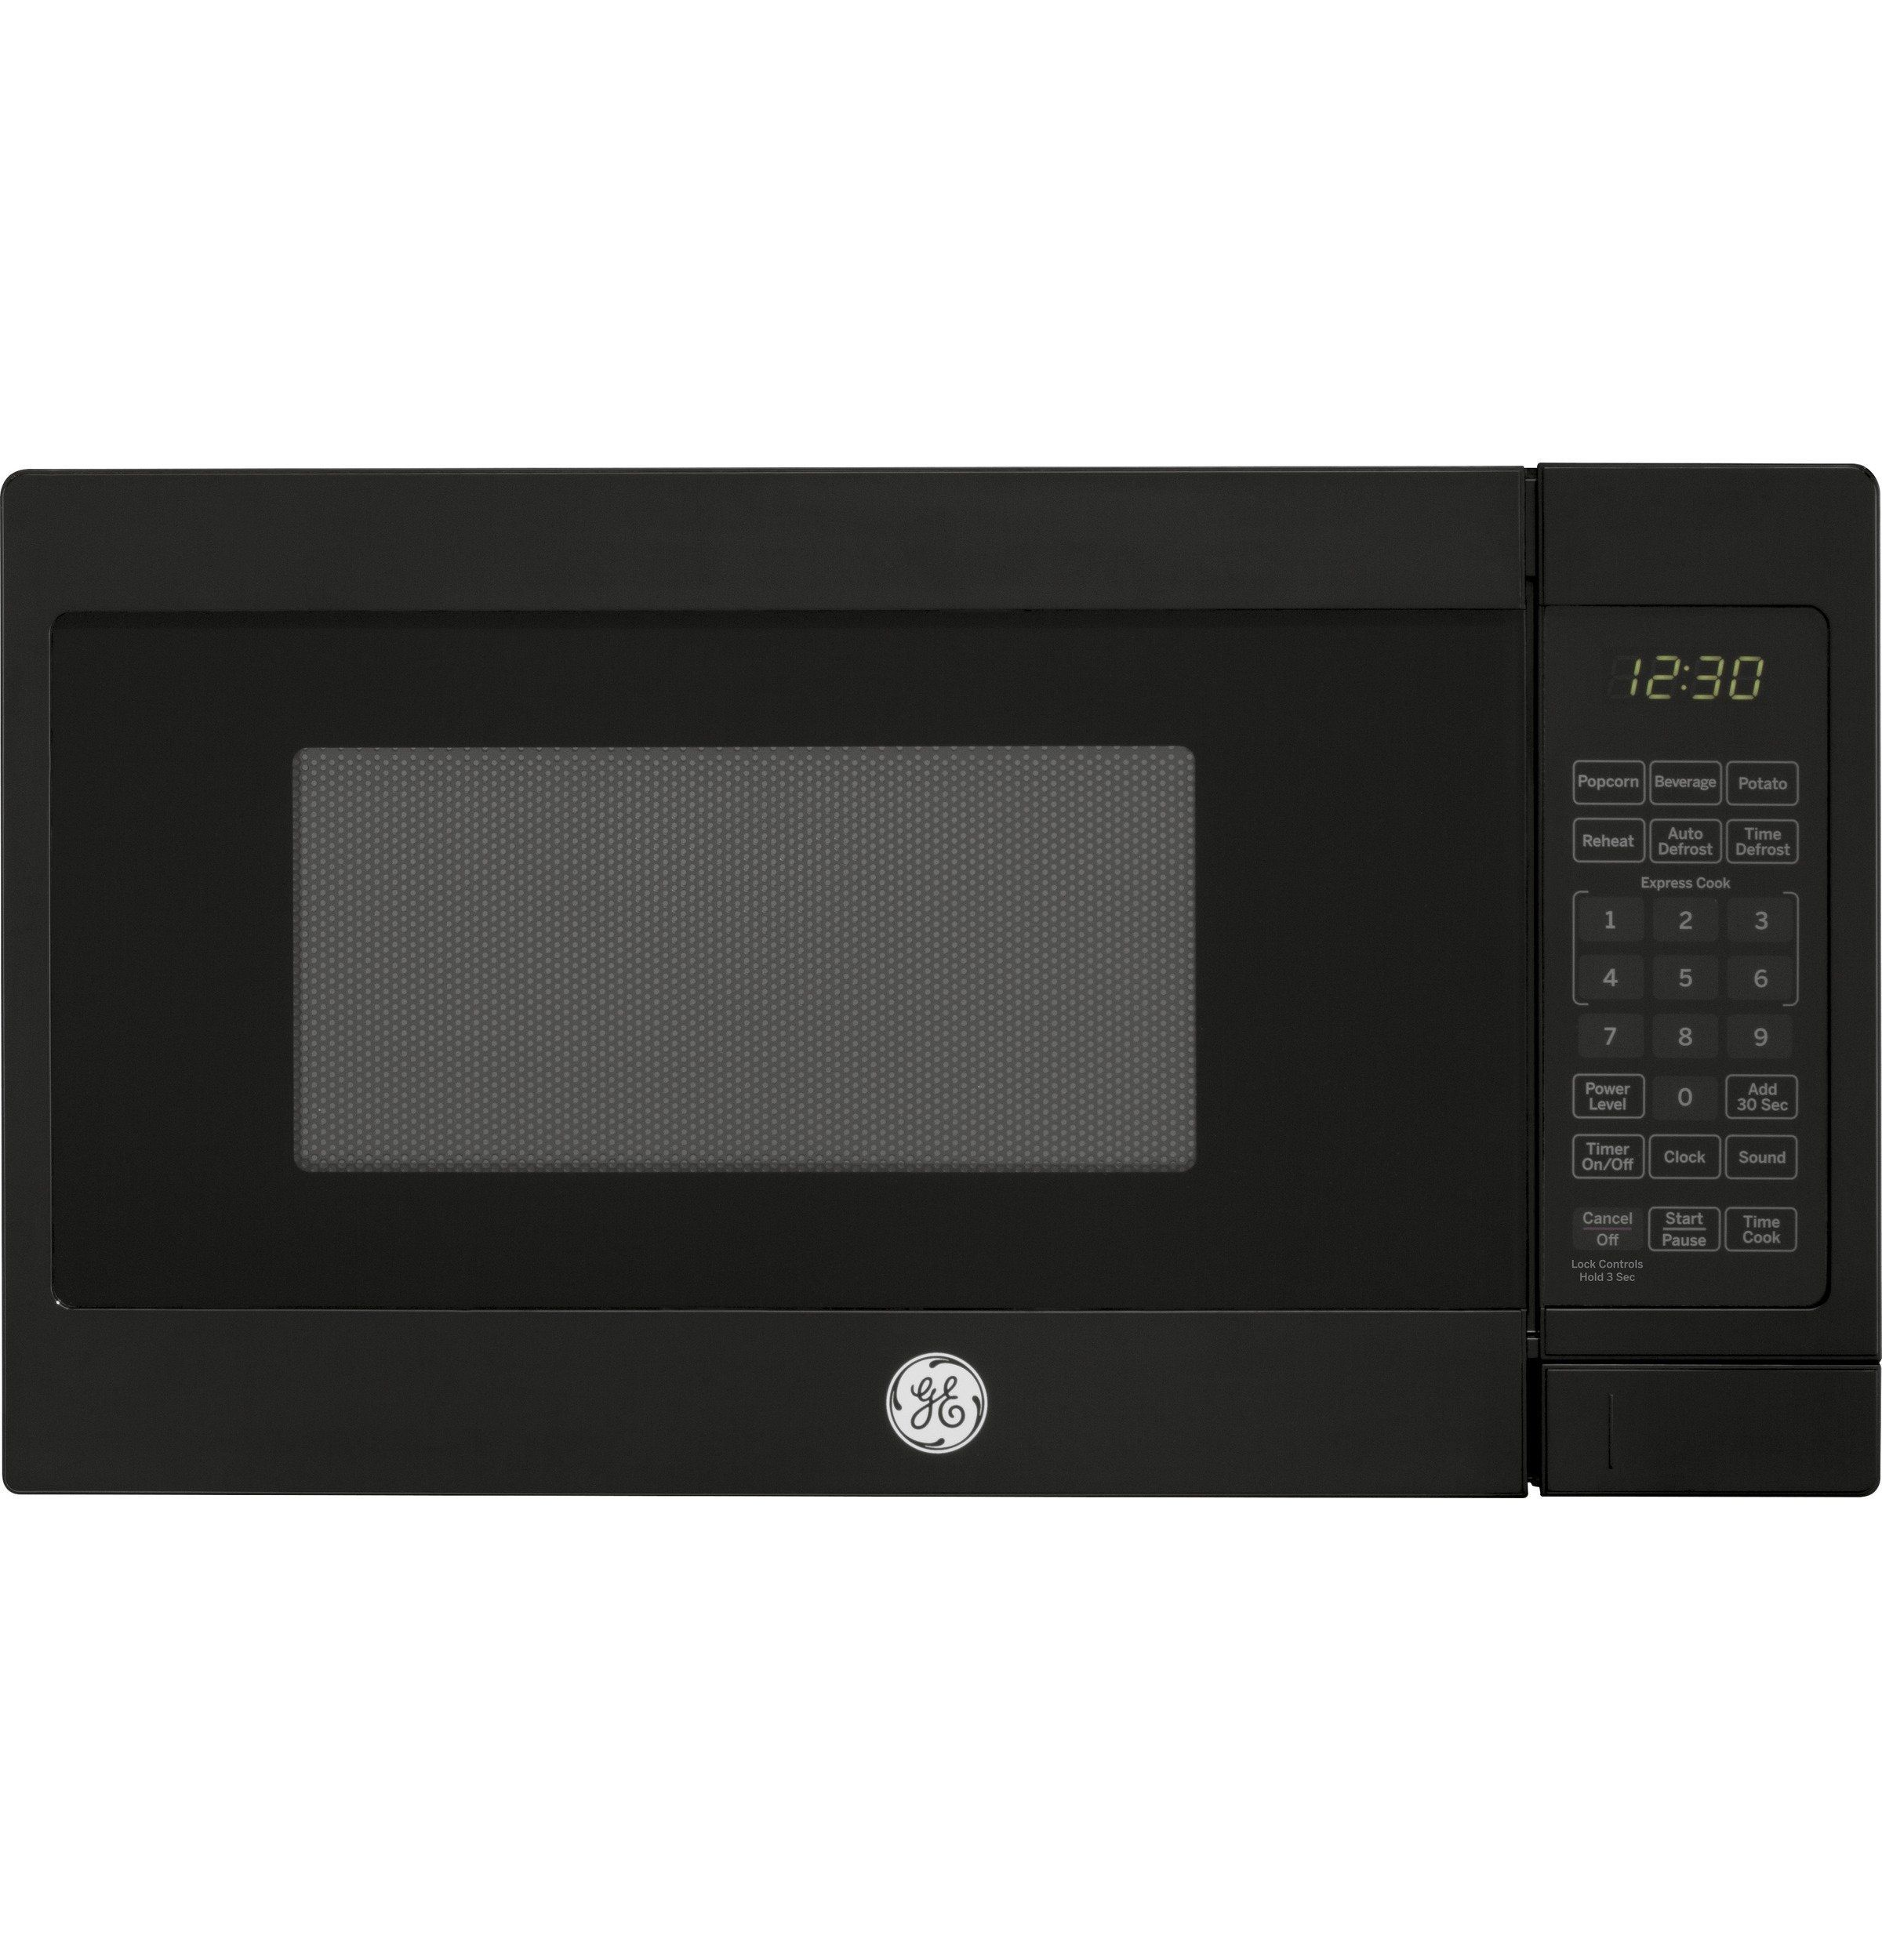 General Electric 0 7 Cu Ft Compact Countertop Microwave Oven